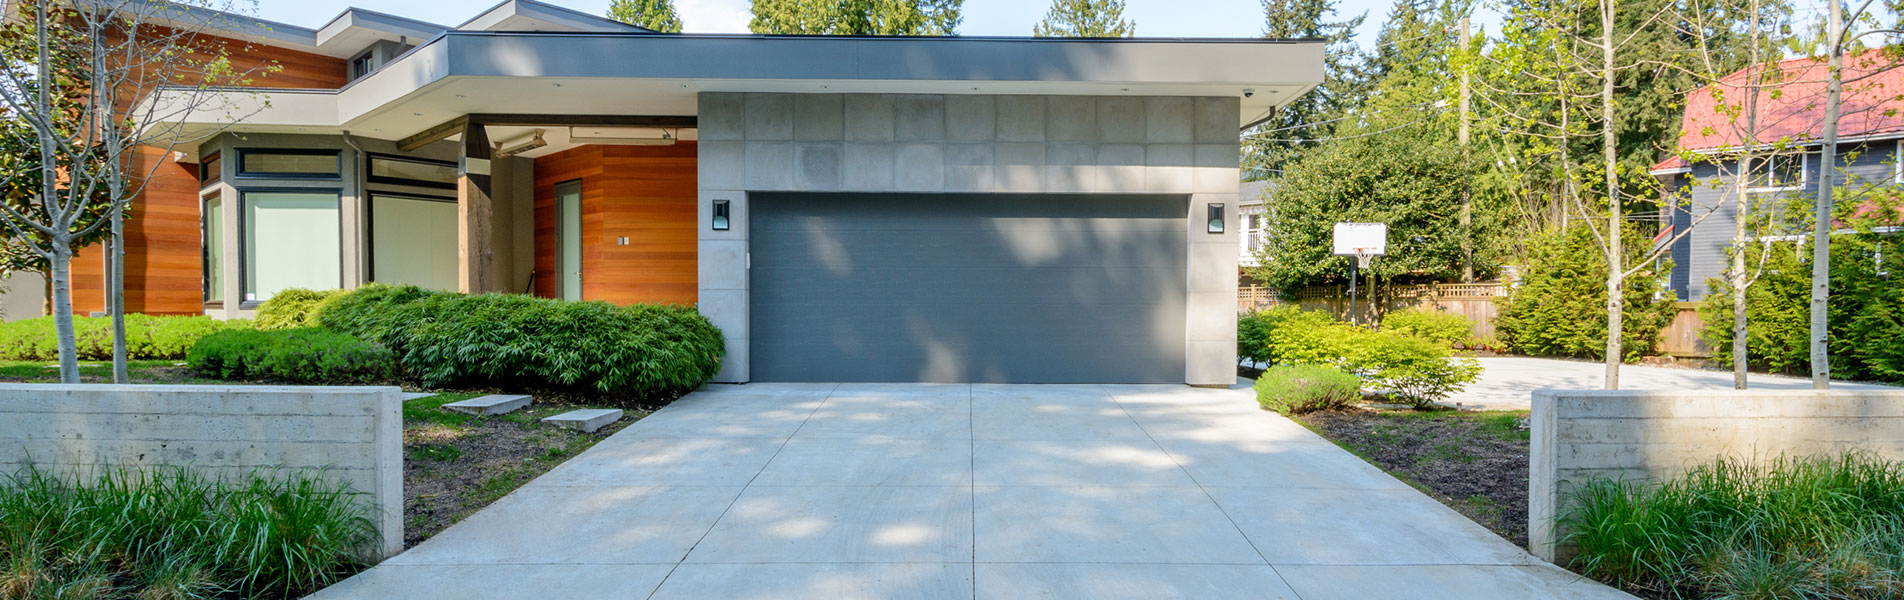 Quality Garage Door Service Pompano Beach, FL 954-446-9254